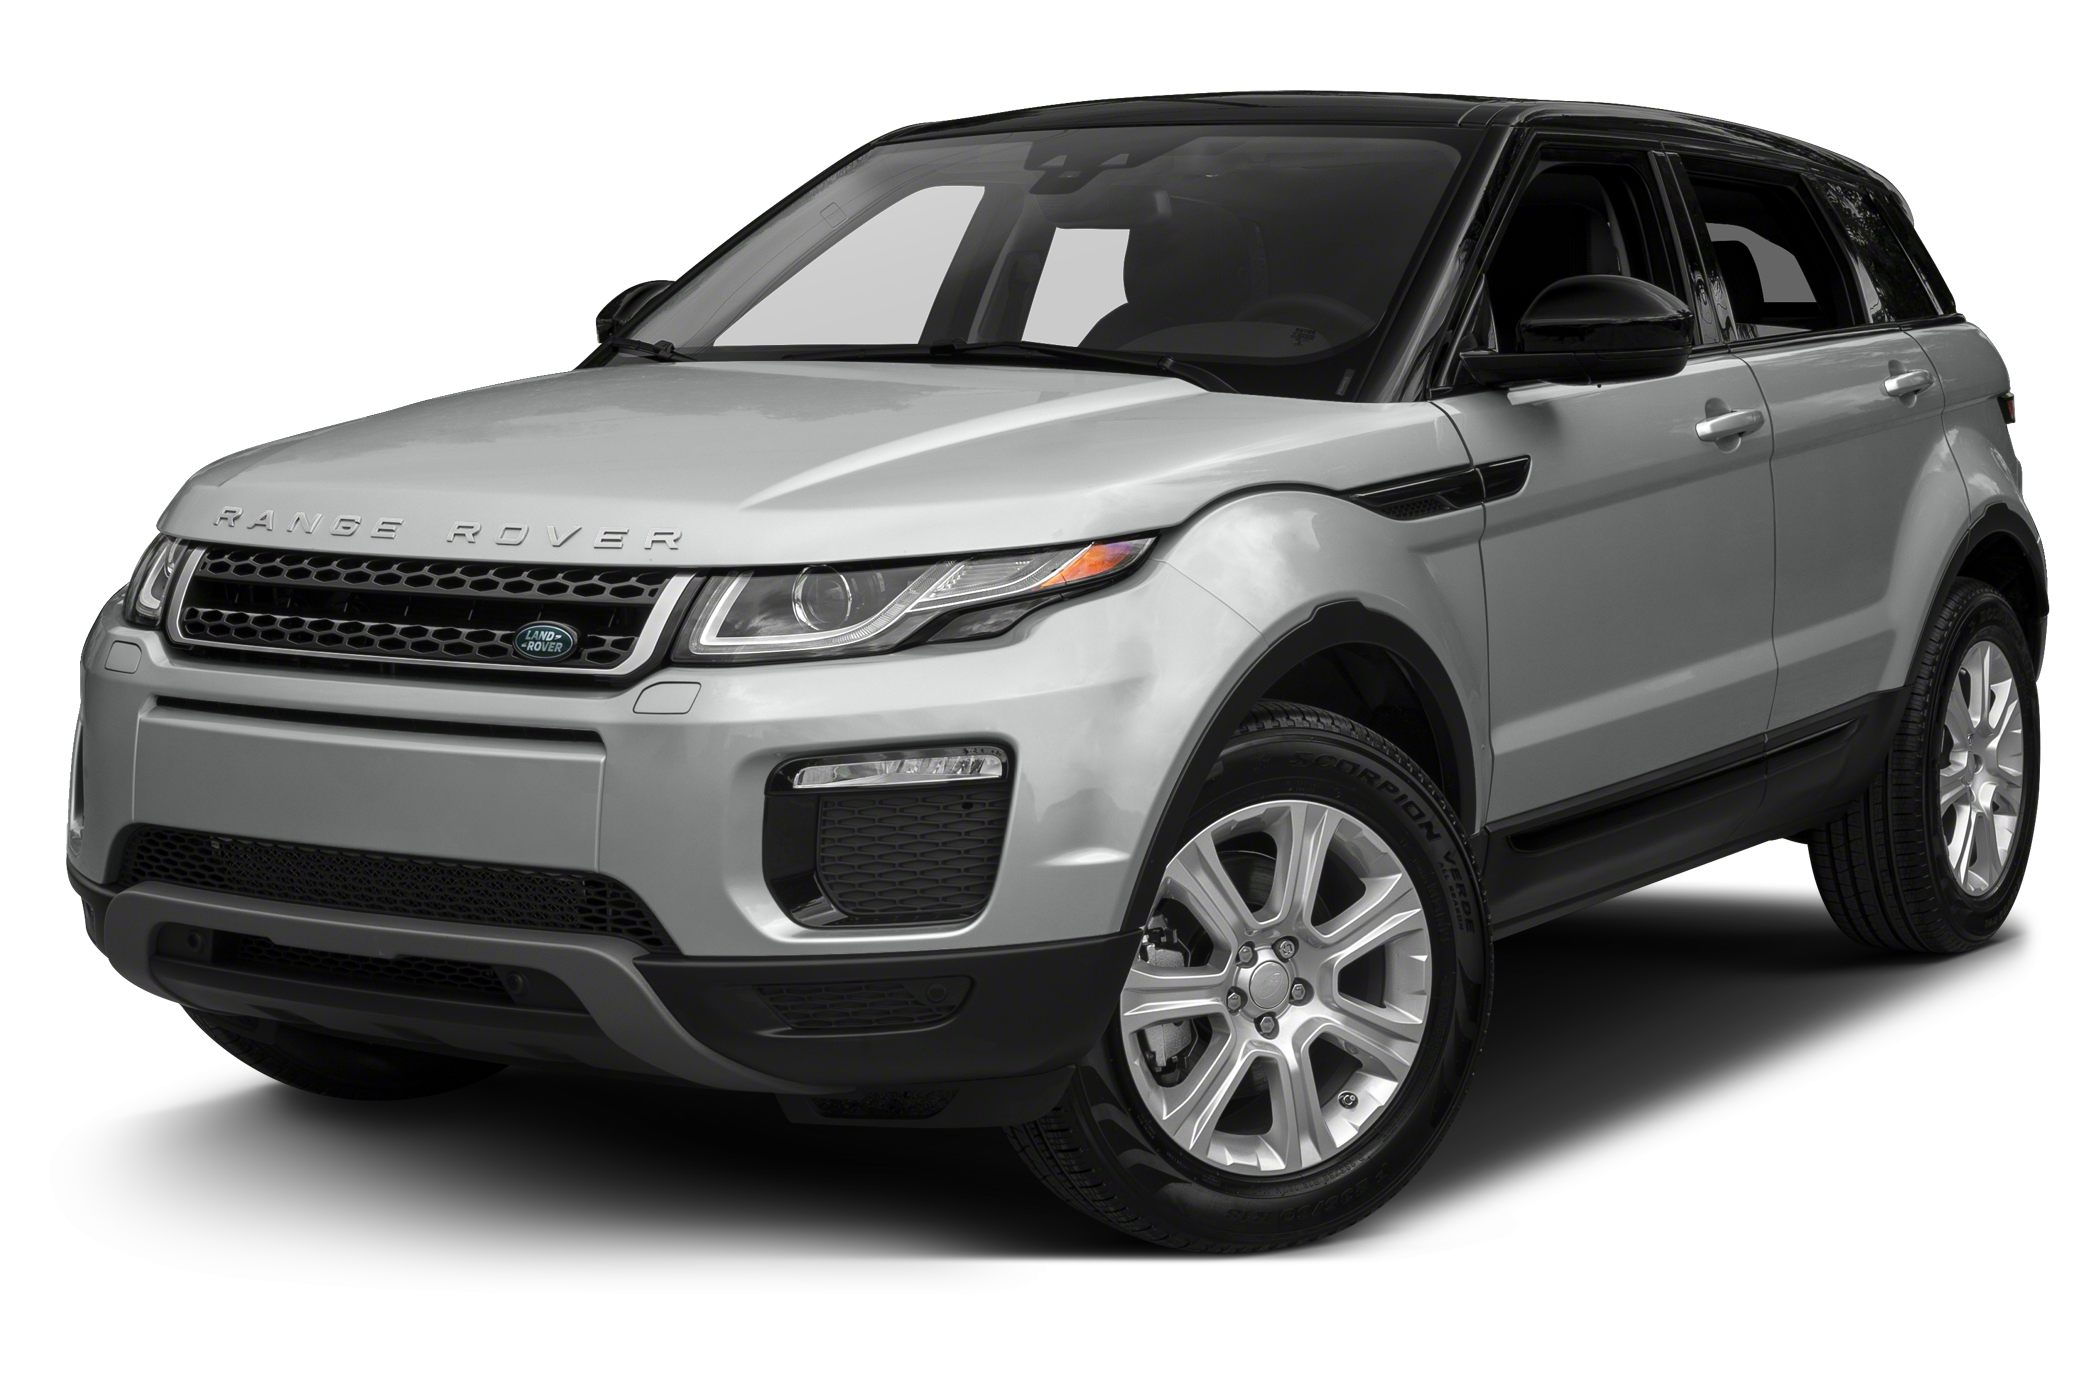 2016 Rover Range Rover 4 0 For Sale ▷ 49 Used Cars From $33 942